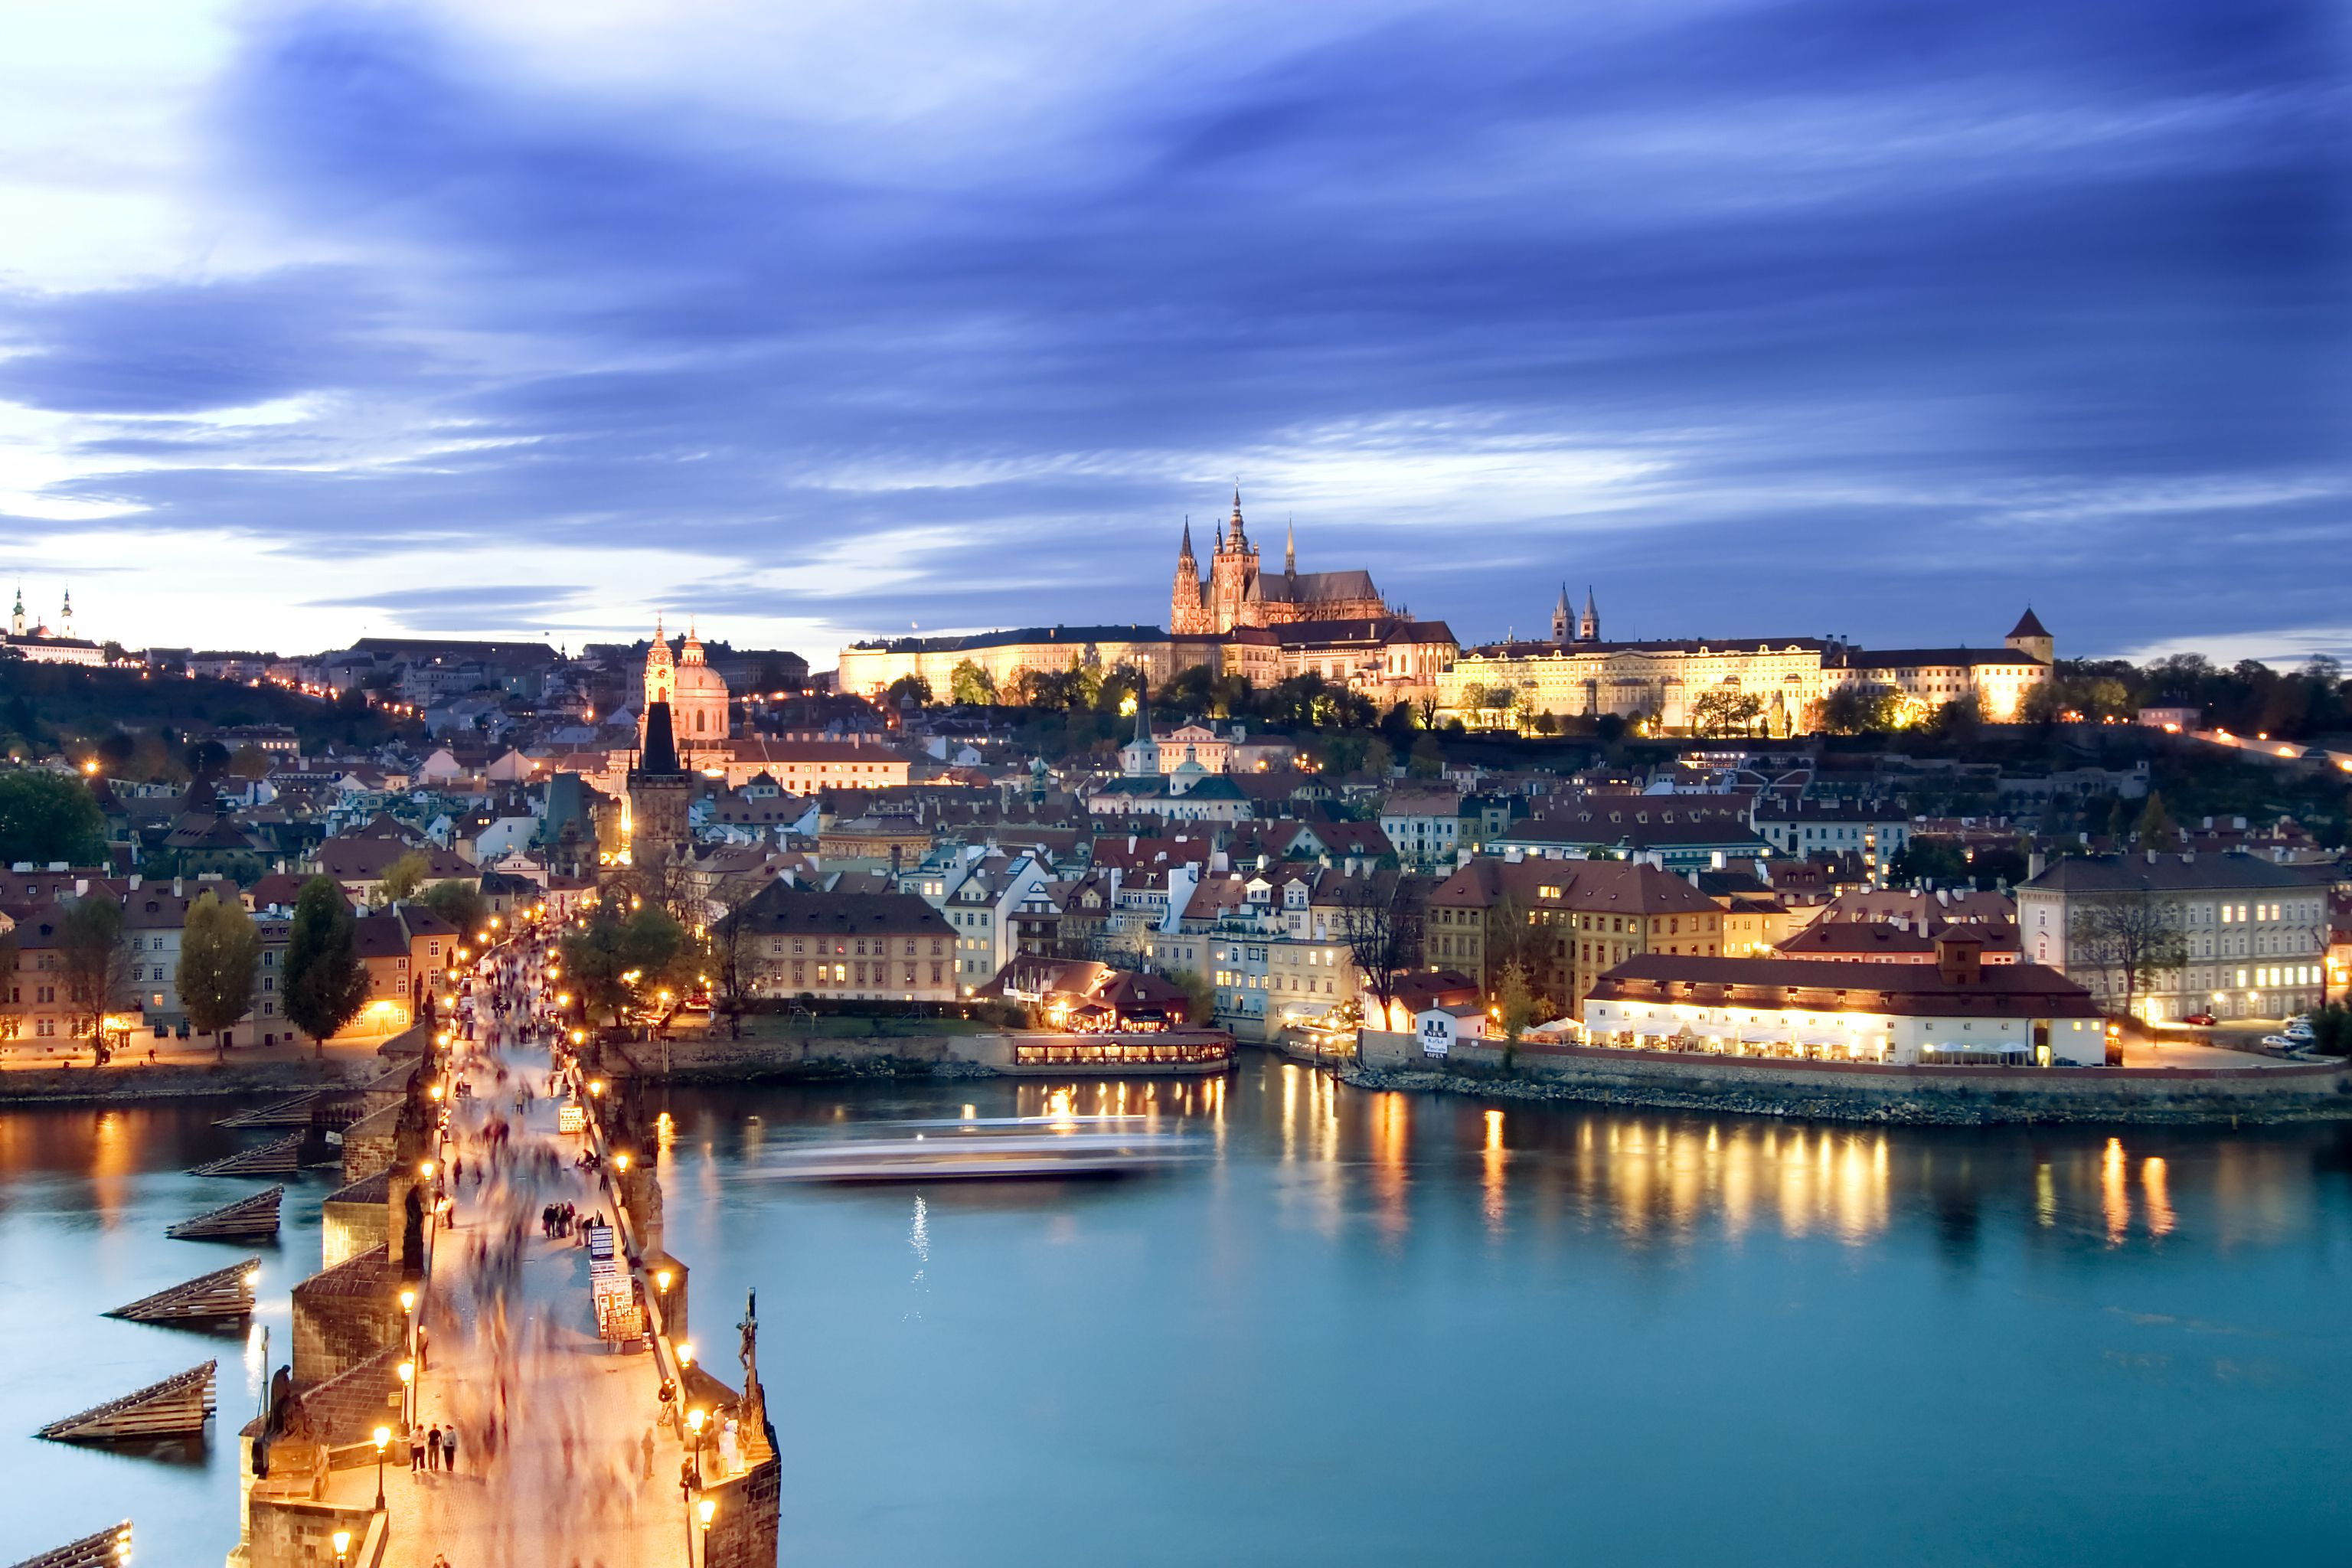 Czech Tourism works with the travel industry professionals to maximize opportunities for developing new itineraries and products featuring the Czech Republic.